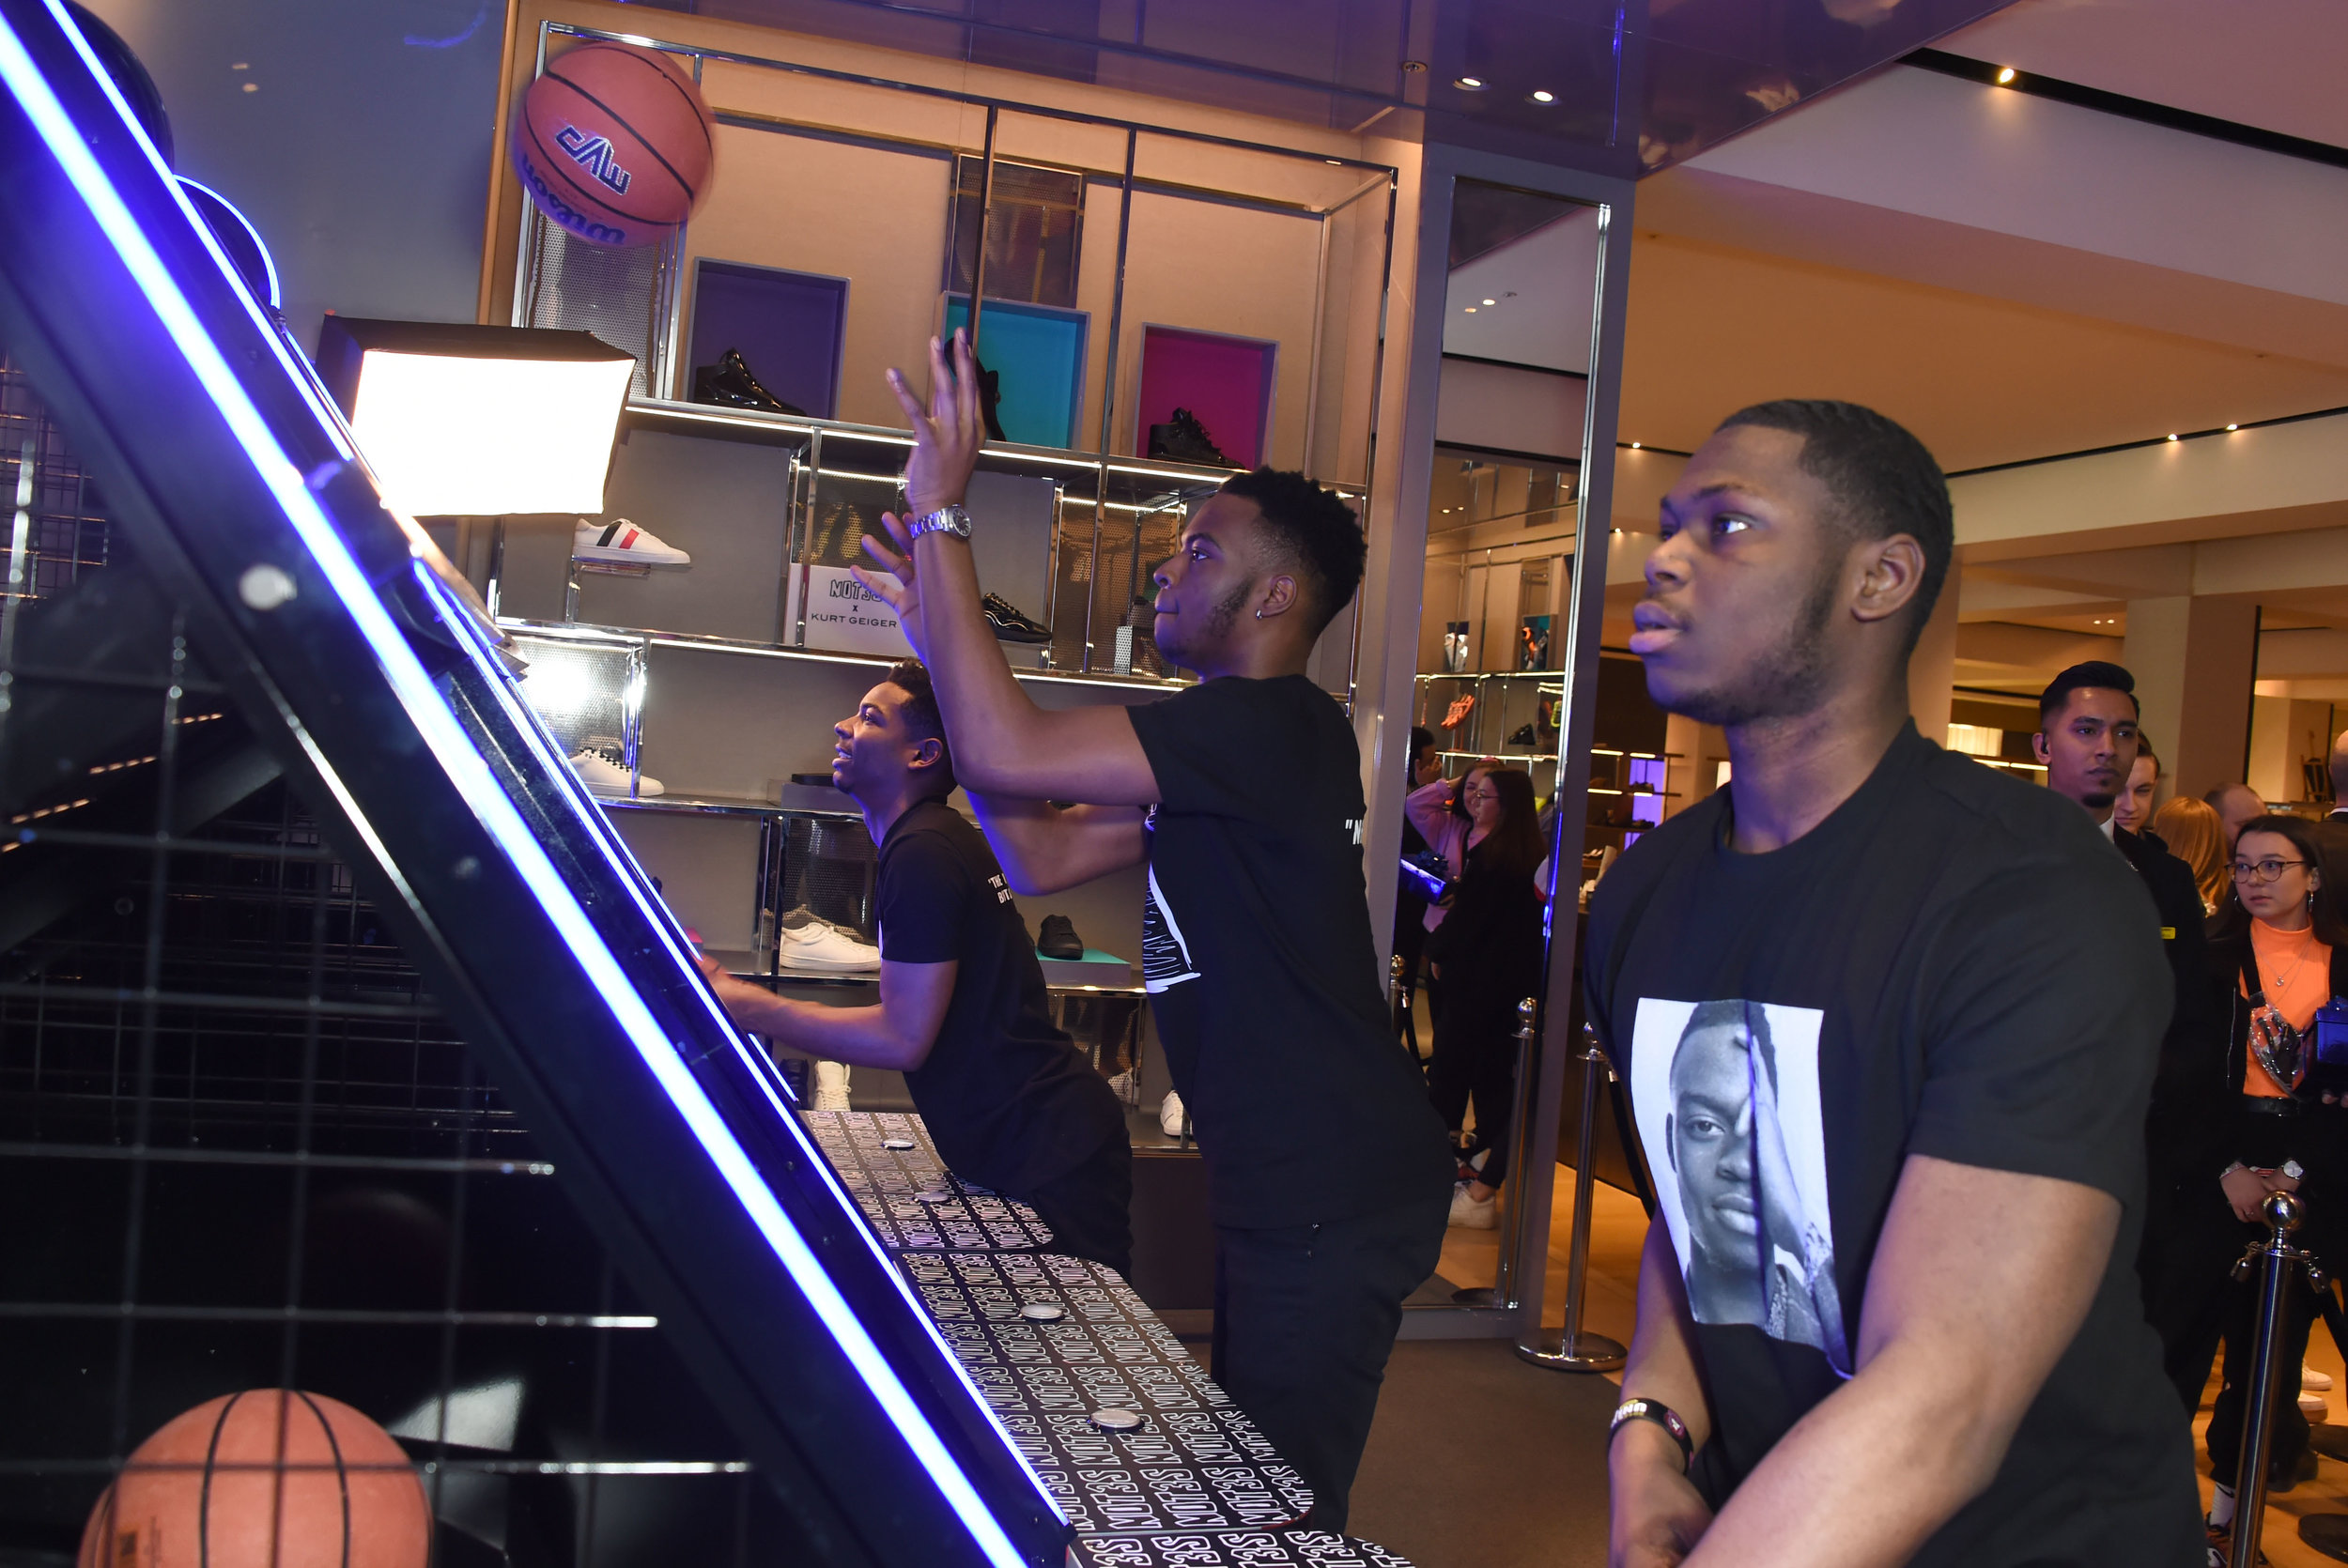 Not3s and friend playing basketball at the in store event at Selfridges London